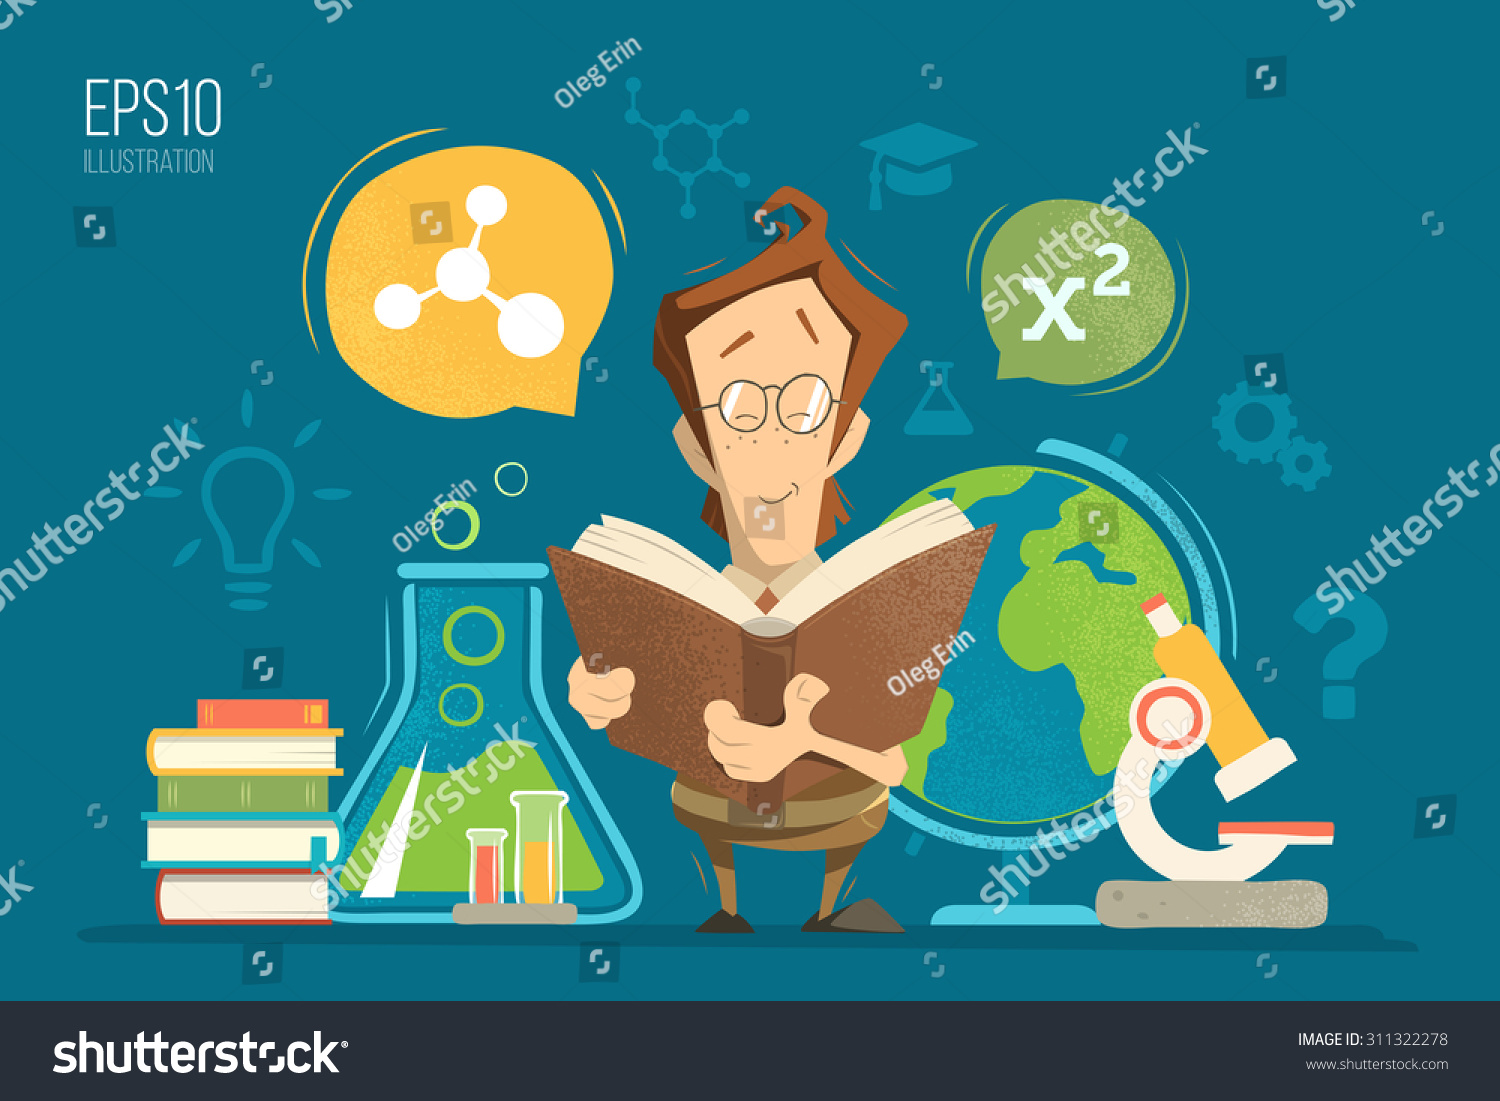 Deciding stock illustrations royalty free gograph - School Education Colorful Vector Illustration Concept Young Schoolboy Boy Child Kid Pupil Holding And Reading